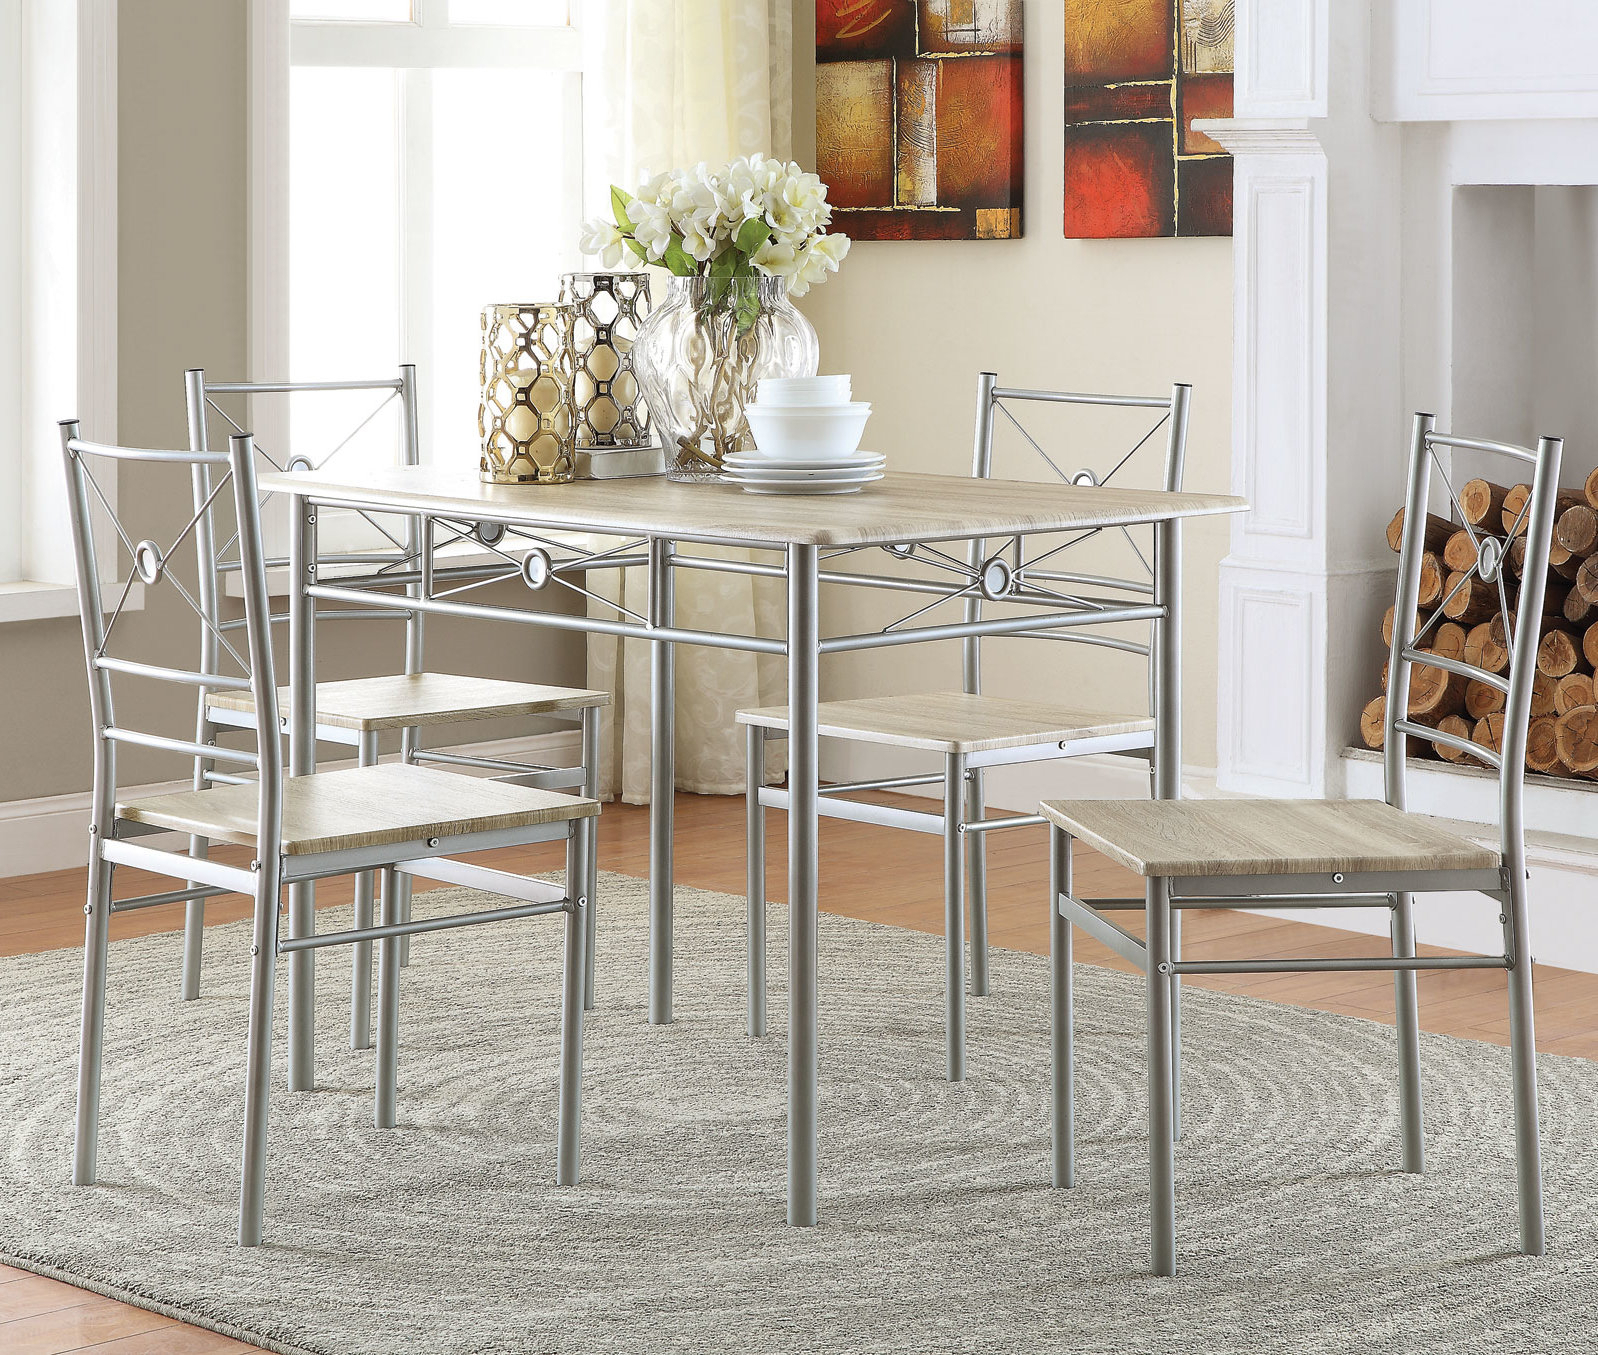 Andover Mills Kieffer 5 Piece Dining Set & Reviews | Wayfair.ca Intended For Latest Ganya 5 Piece Dining Sets (Photo 12 of 20)